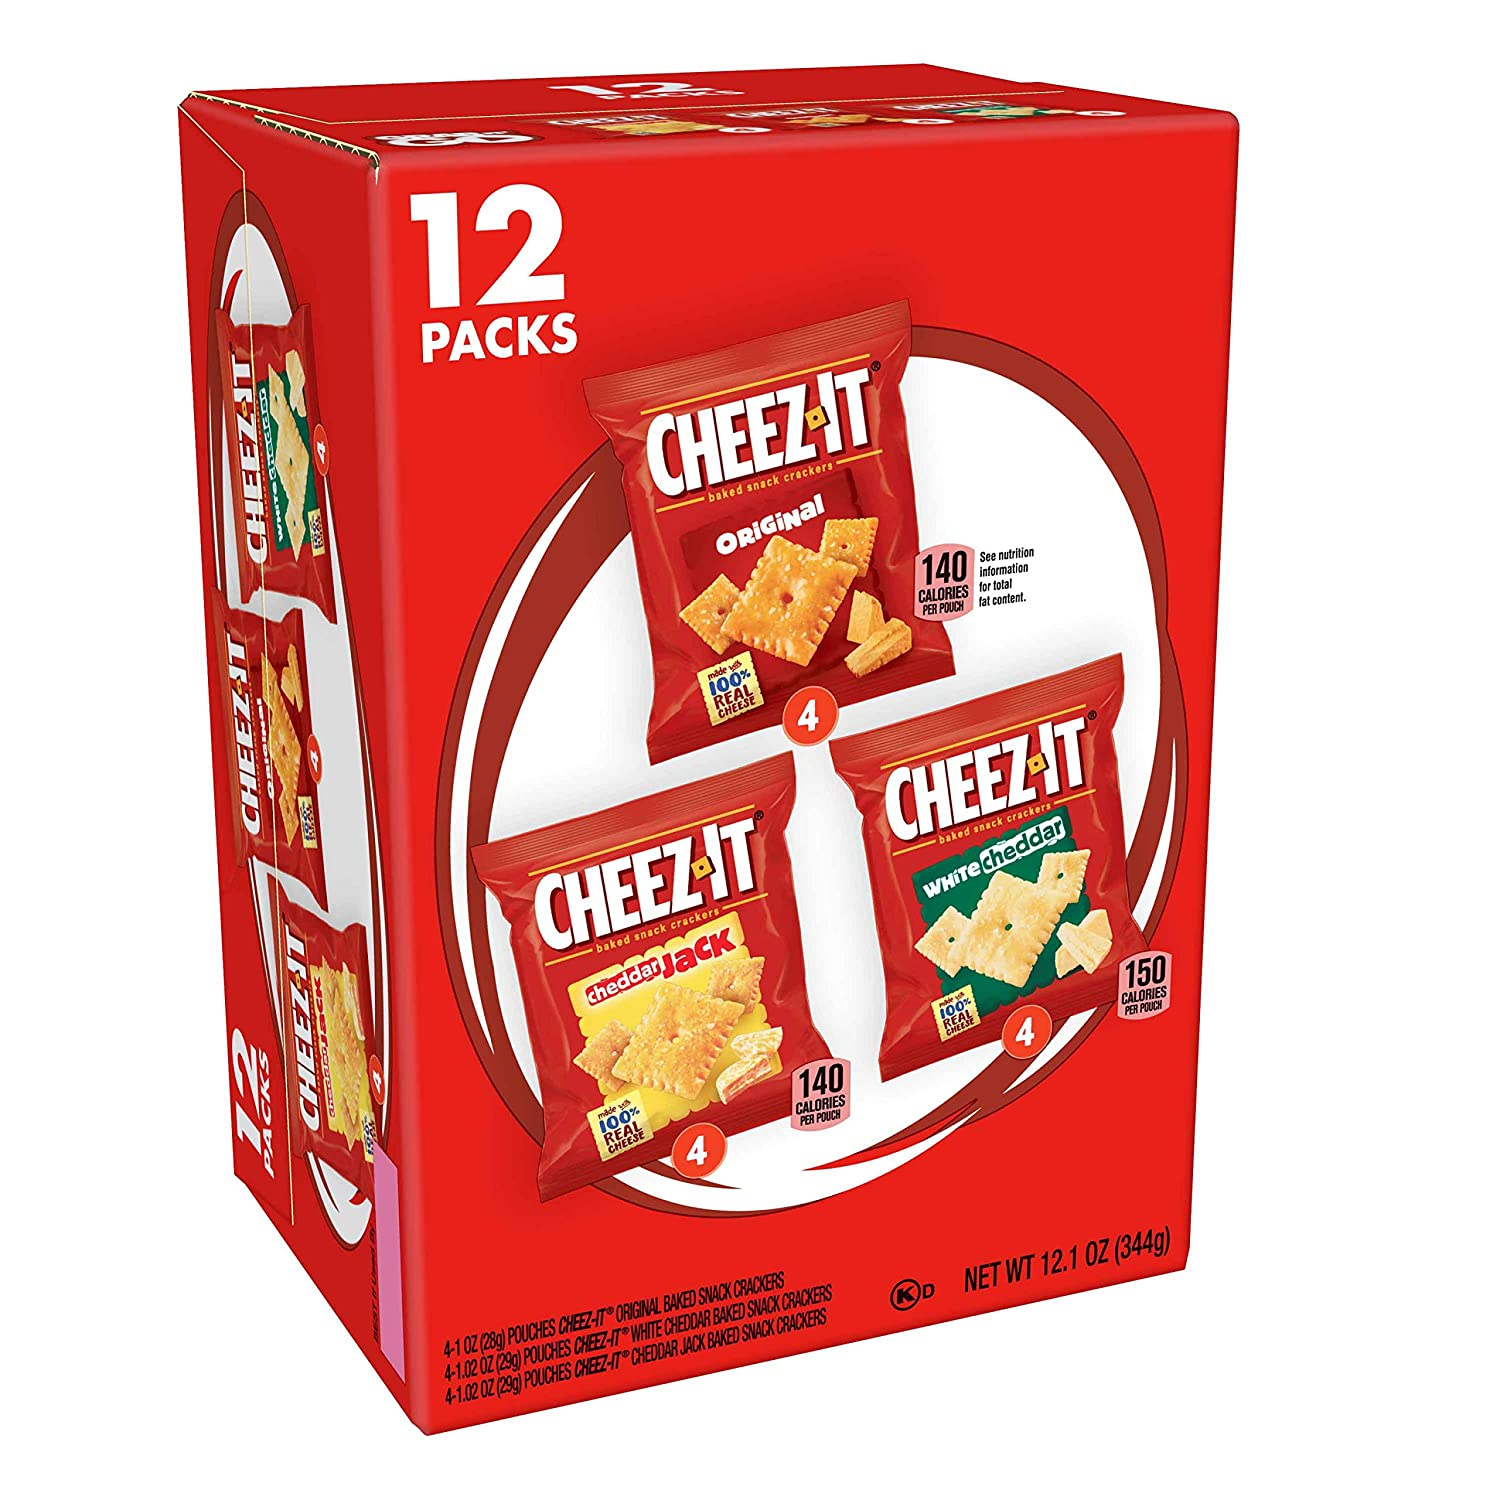 Cheez-It Baked Snack Cheese Crackers, Variety Pack, Original, White Cheddar, Cheddar Jack, 1.02 oz Bags (12 Count)